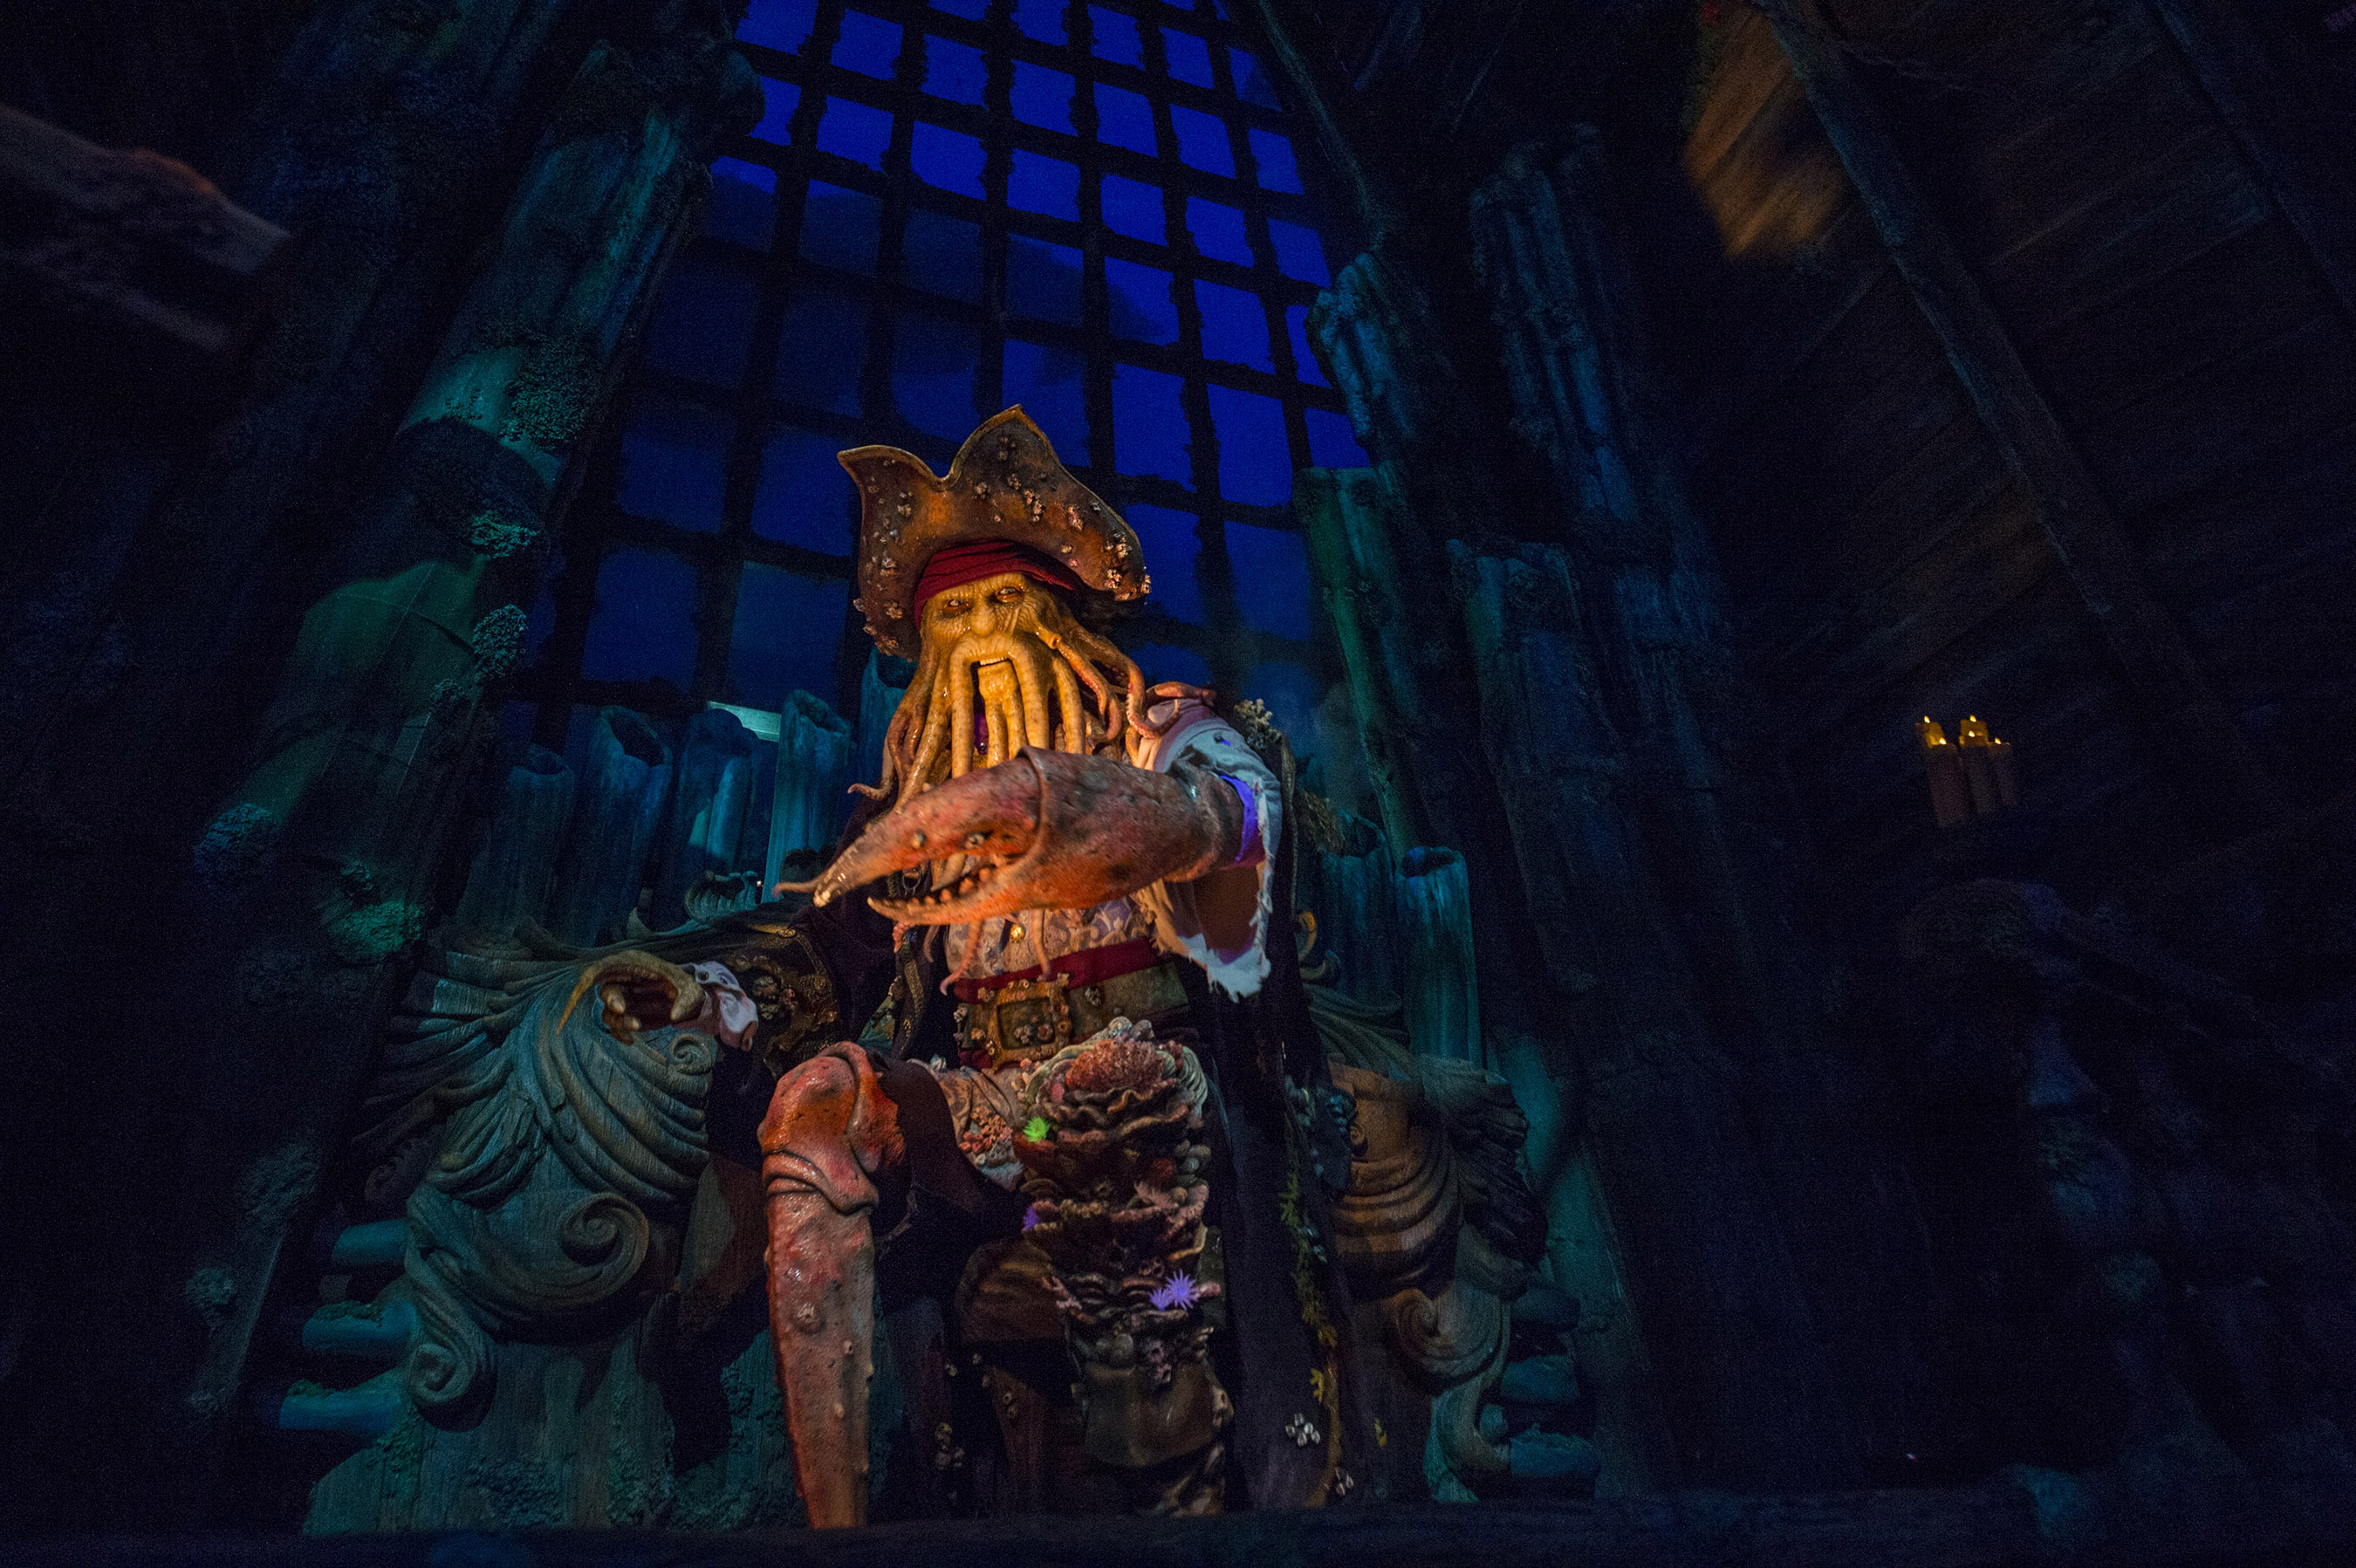 "Pirates of the Caribbean: Battle for the Sunken Treasure is a spectacular boat ride that takes guests on an adventure with Captain Jack Sparrow and cohorts like Davy Jones at Shanghai Disneyland. As they journey along the Battle for the Sunken Treasure, their boats will spin and move in synchronization as they travel through breathtaking scenes and lively battles. A hallmark at Disney theme parks, ""Pirates of the Caribbean"" has thrilled guests with its scallywags and adventures around the world. (Ryan Wendler, photographer)"